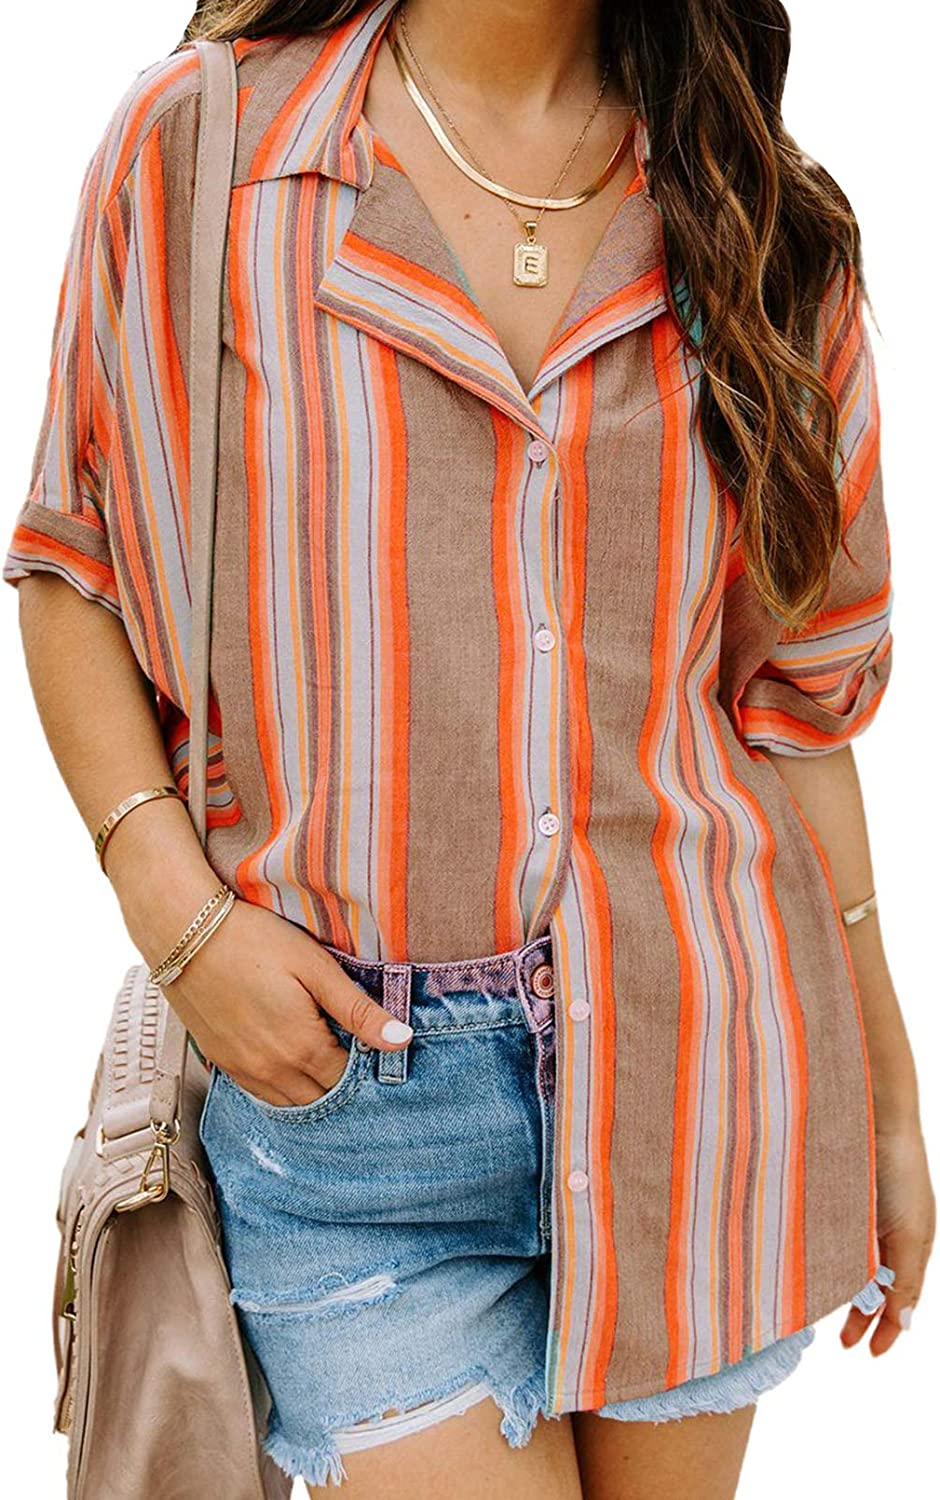 Dokotoo Womens Striped Short Sleeve Blouses Button Turn-Down Collar Shirts Loose Tops